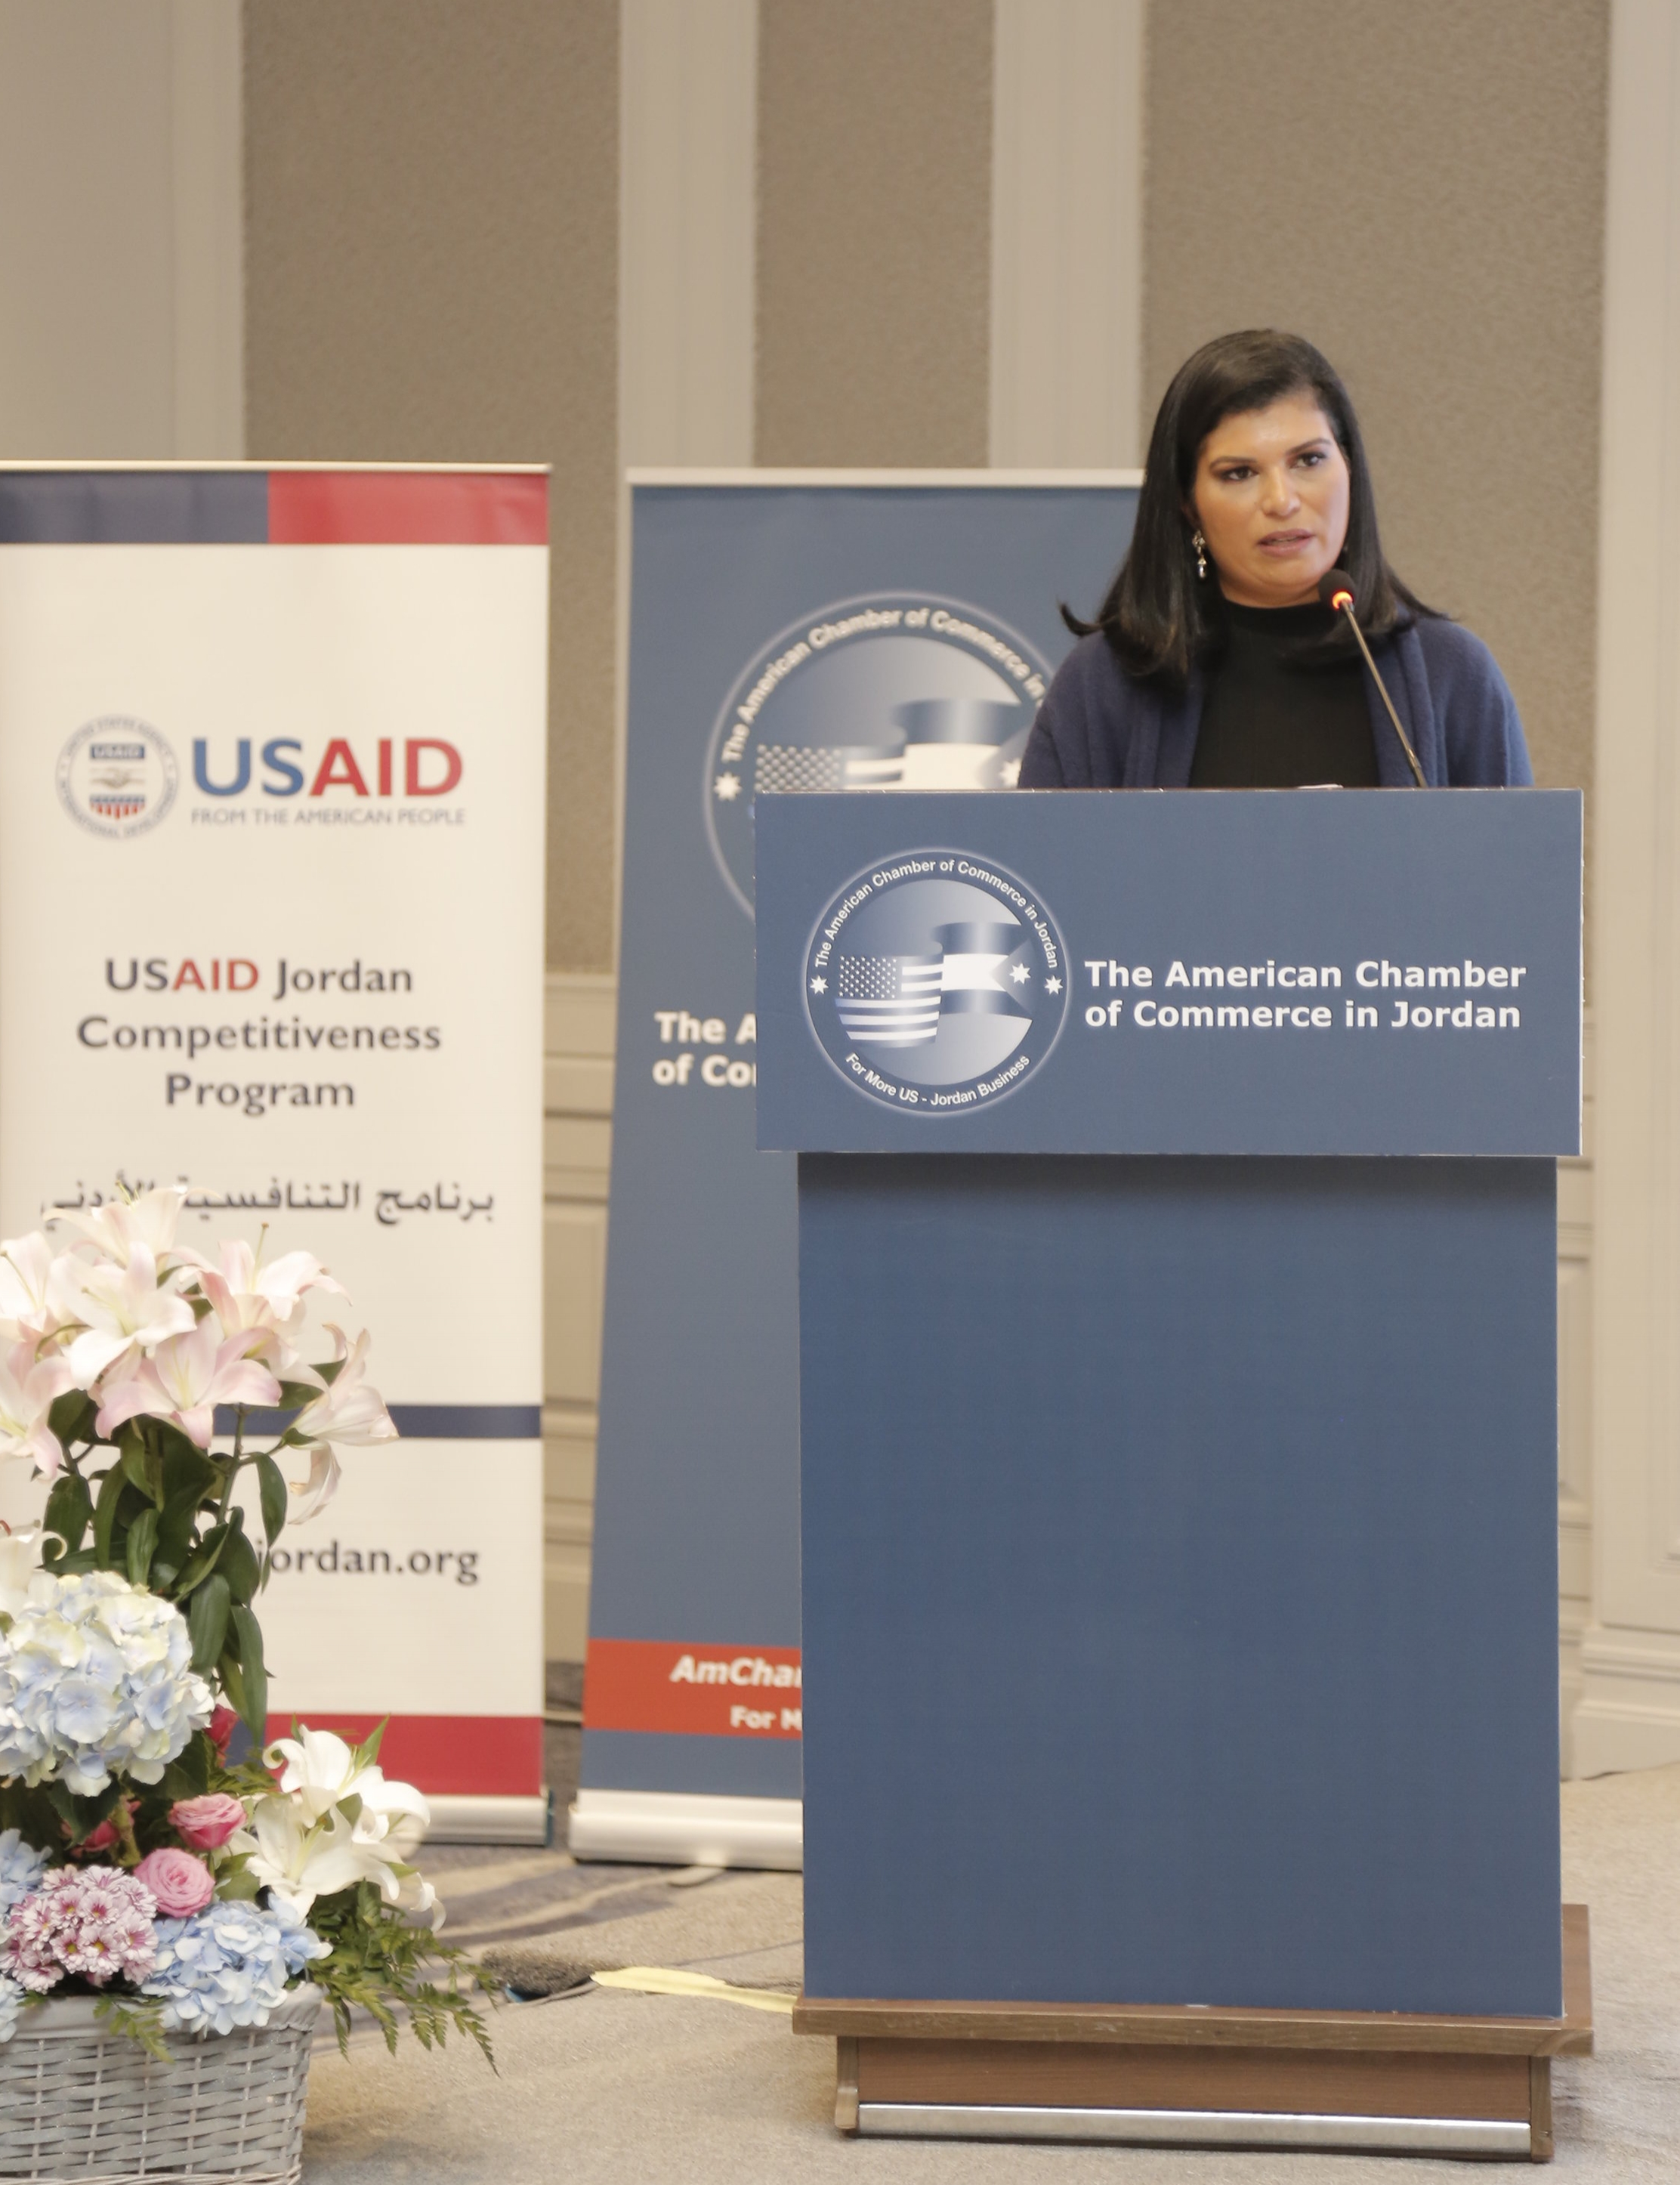 Her Royal Highness Princess Sumaya bint El Hassan addresses the annual AmCham MENA Conference and Exhibition in October 2018